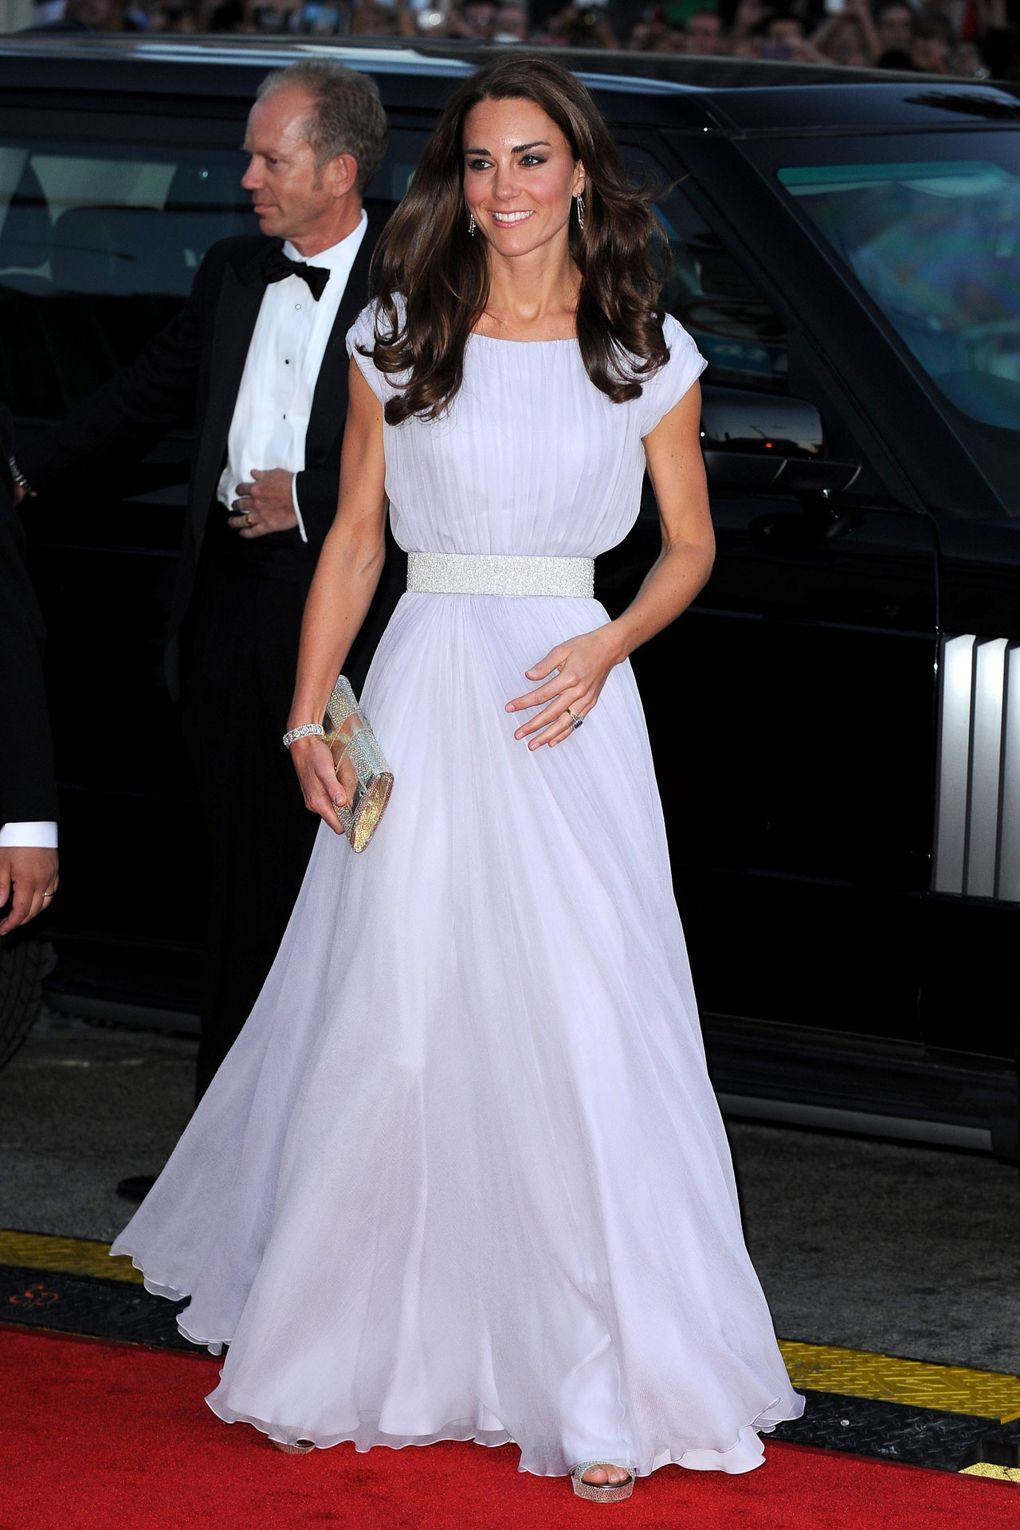 14ac4ef087a7 She wore an Alexander McQueen gown with Jimmy Choo heels and a clutch for  the BAFTA Brits to Watch gala dinner in LA.